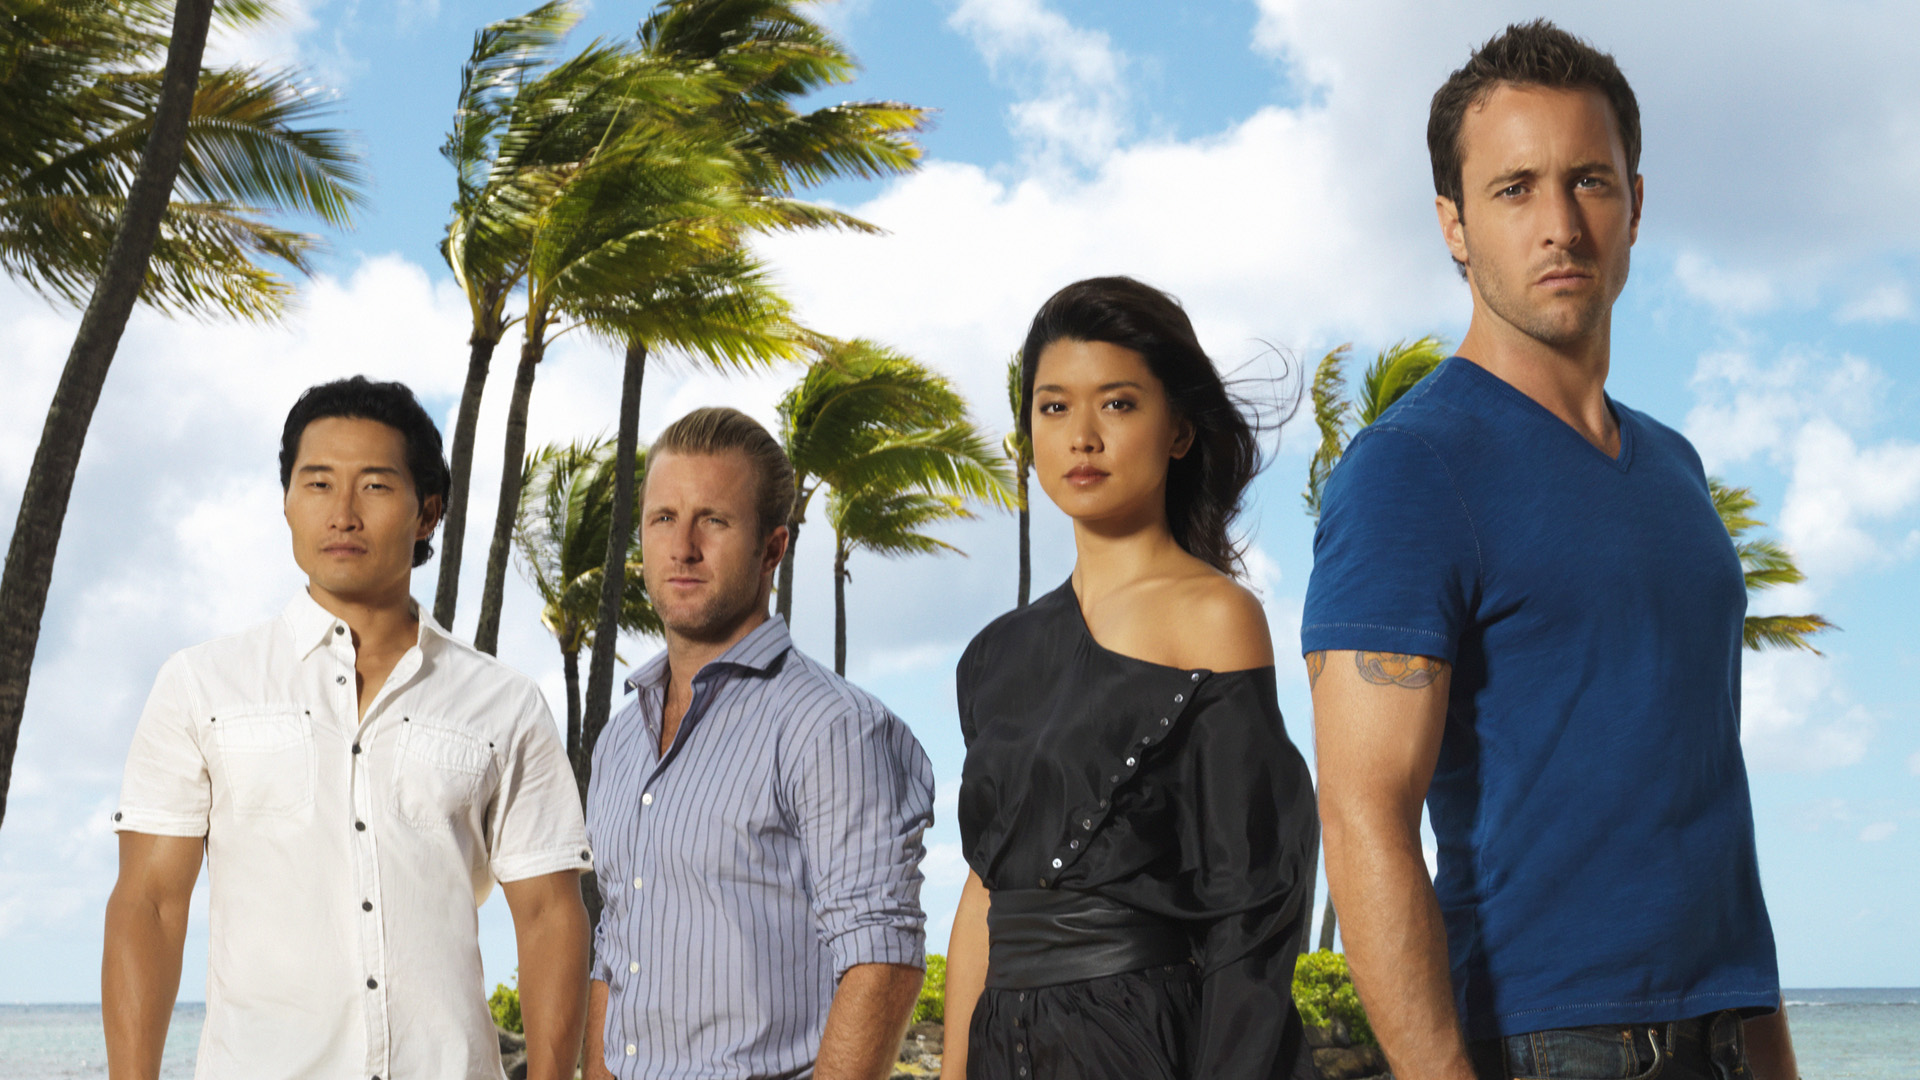 天堂執法者 第6季 第17集 Hawaii Five-O S6 Ep17